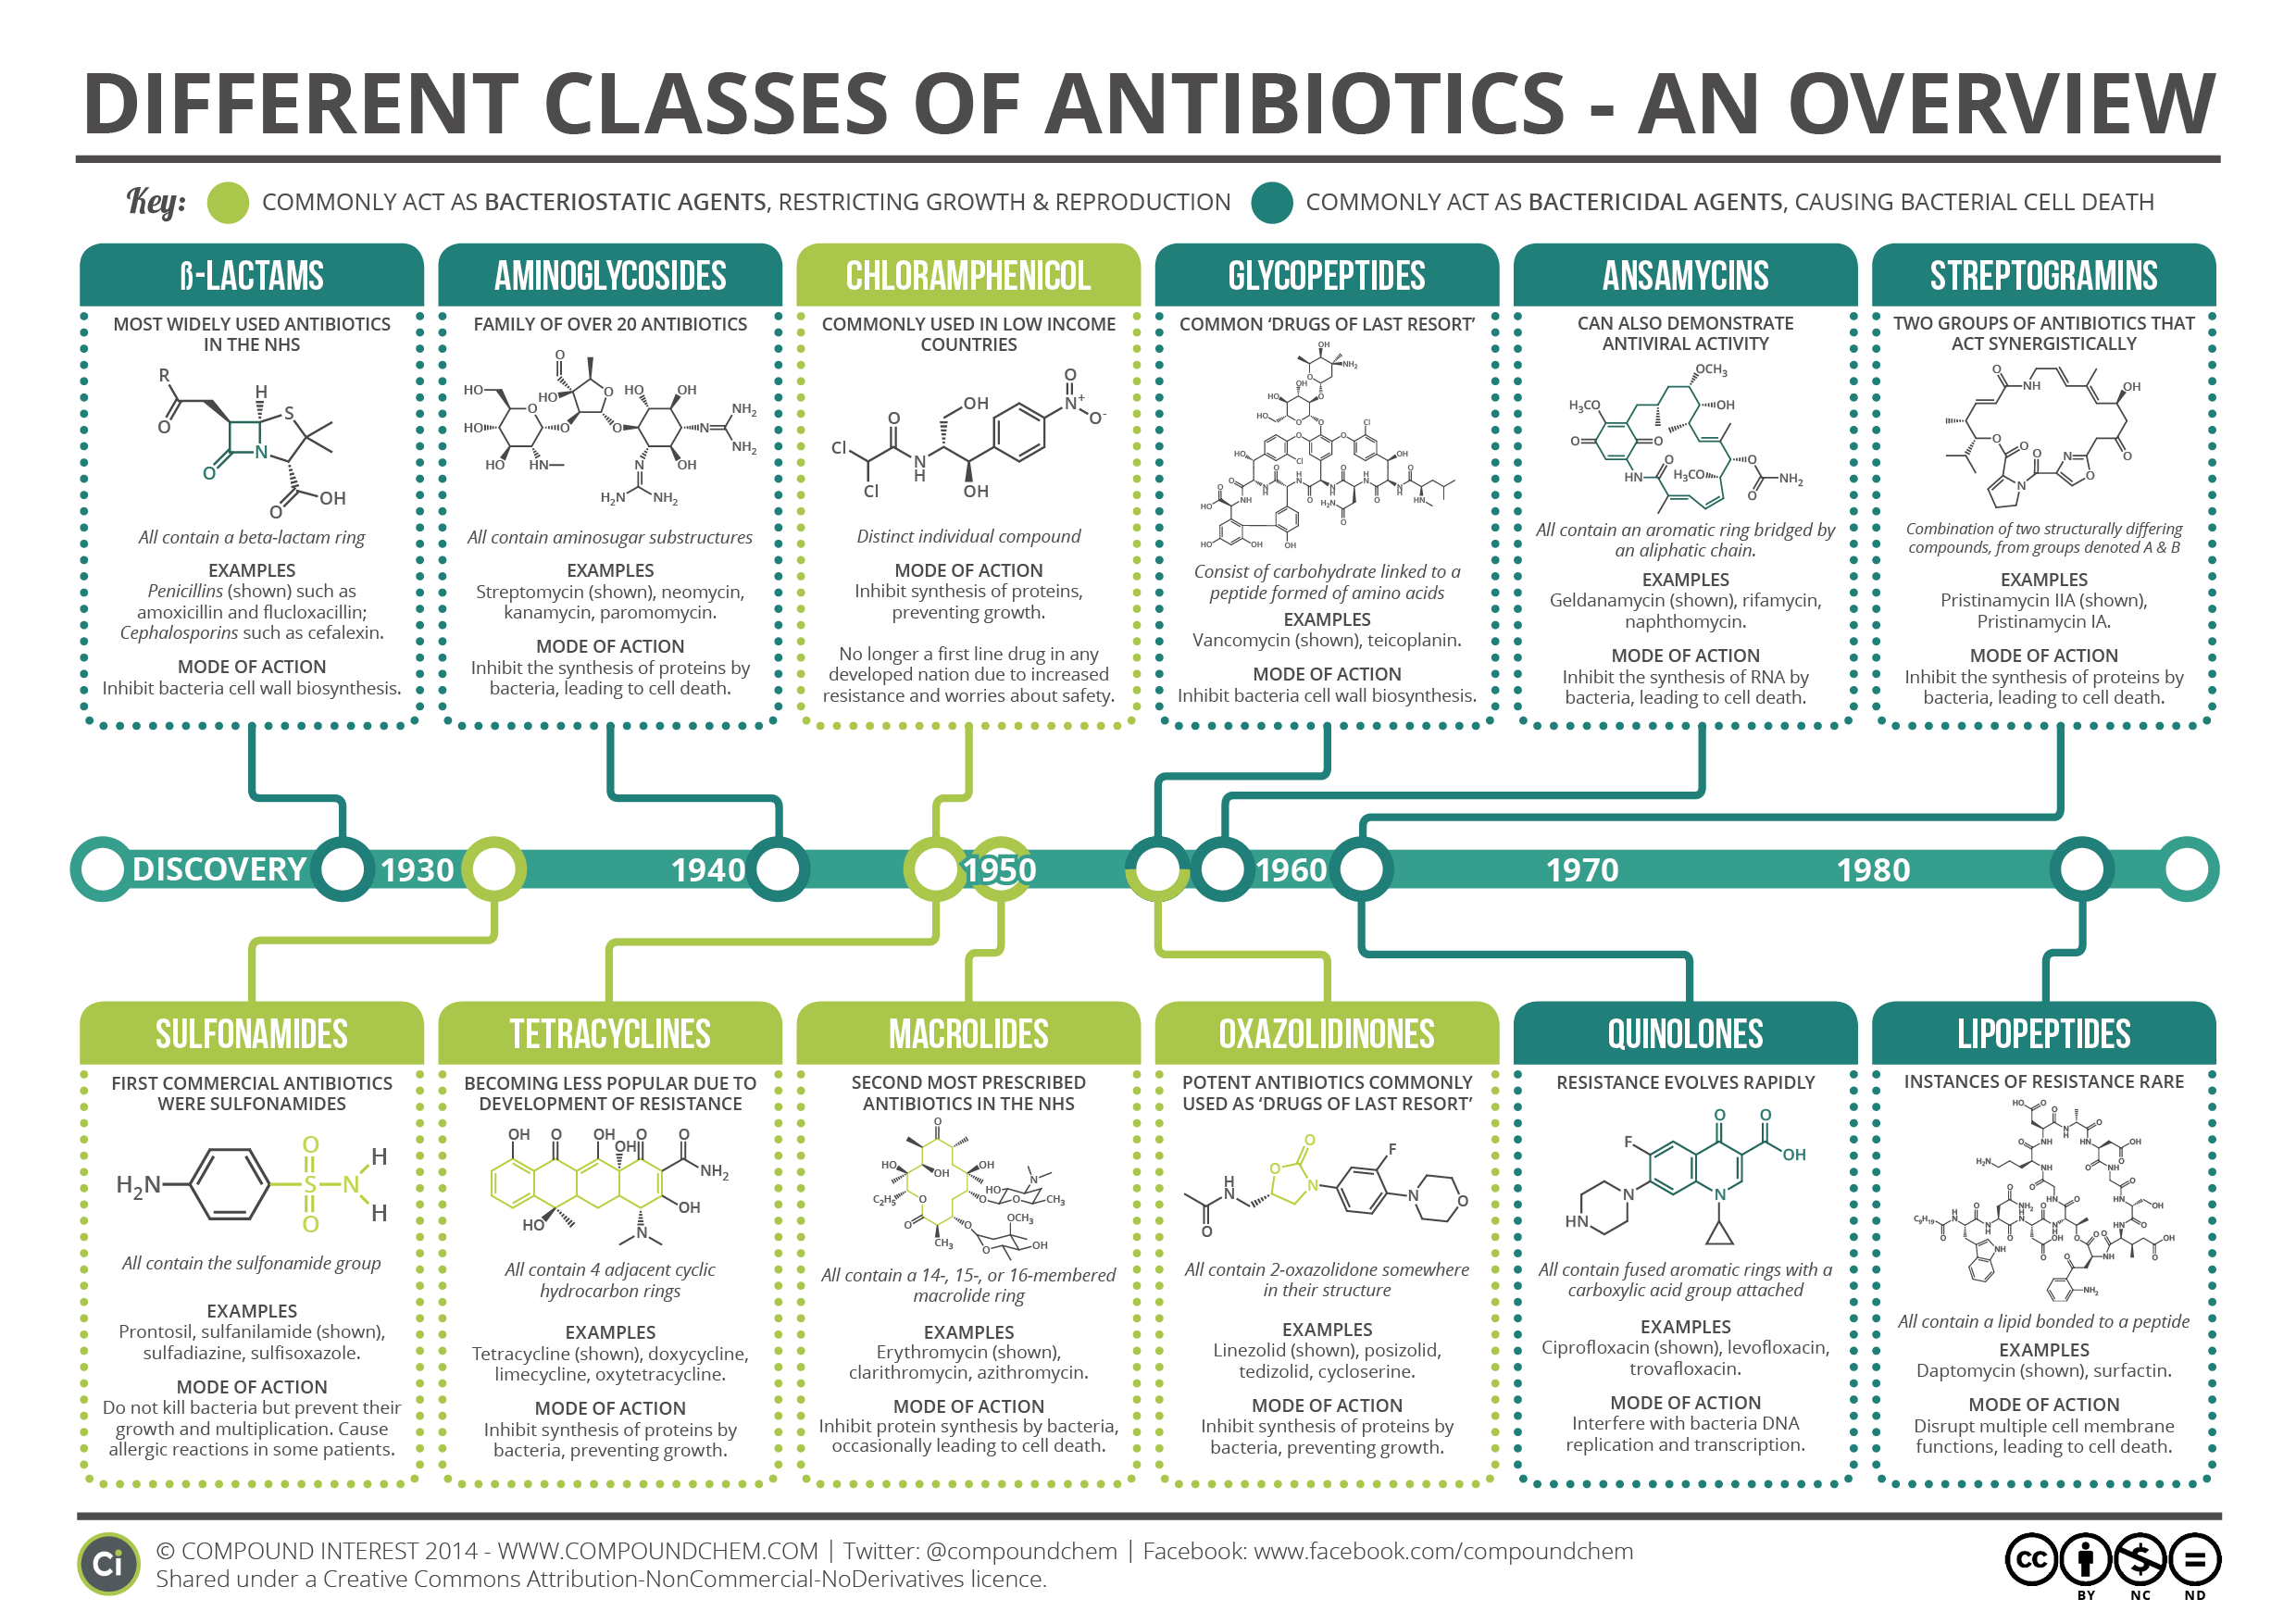 Q10 – Remembering antibiotics and their classes | AIMED